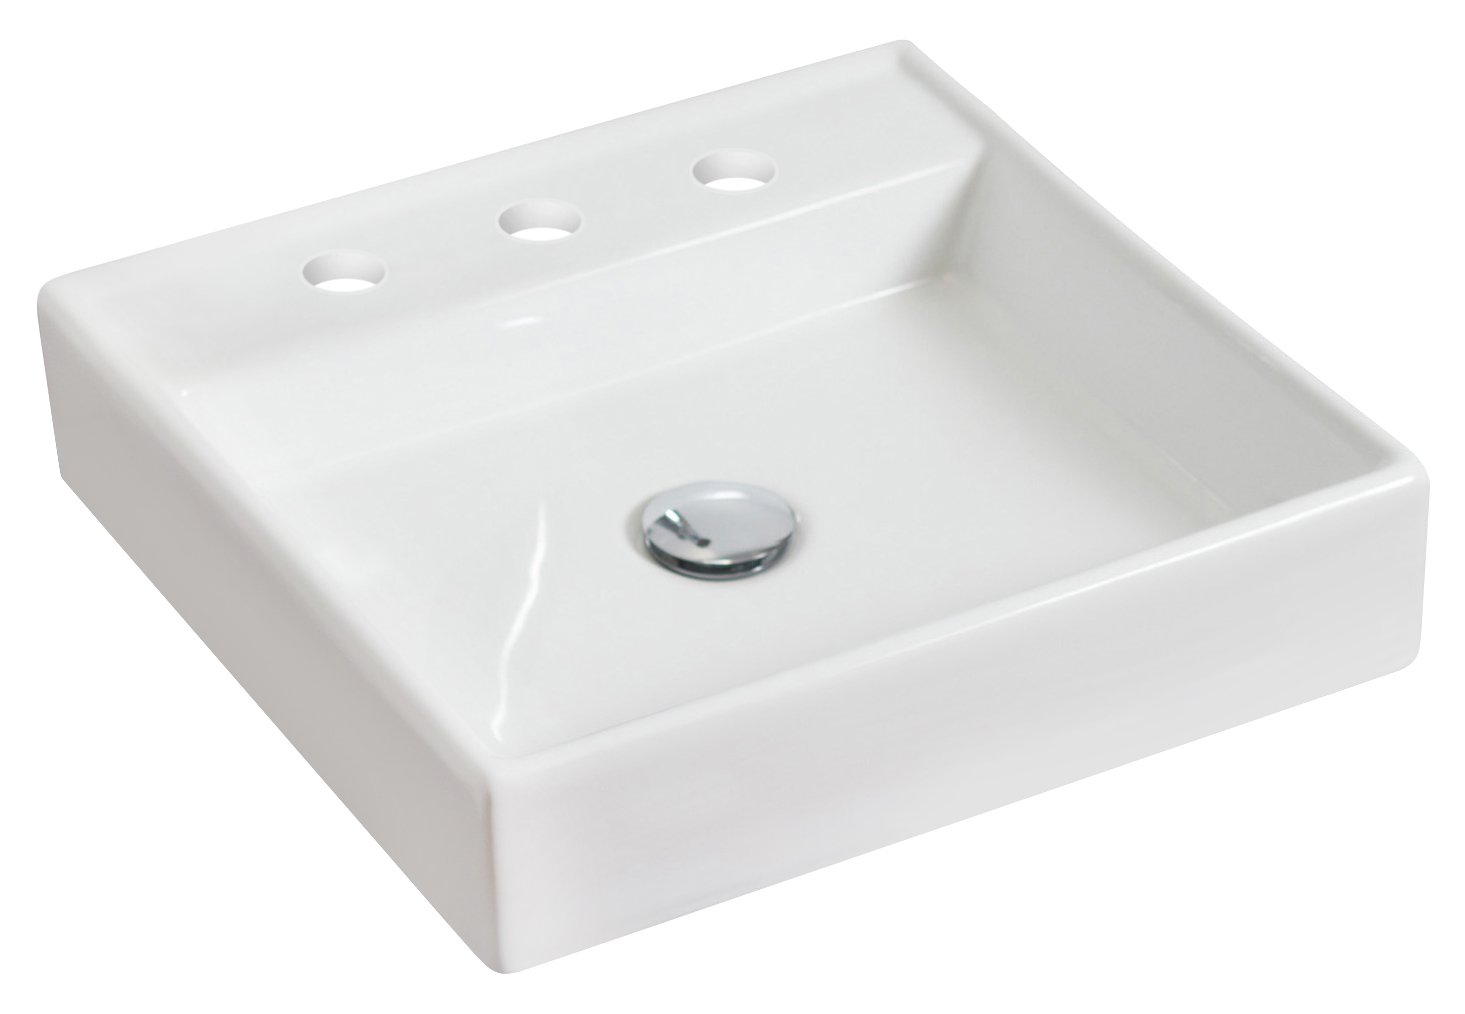 American Imaginations Square Shape Vessel, comes with an Enamel Glaze Finish in White Color and Designed for an 8-In. O.C. Faucet